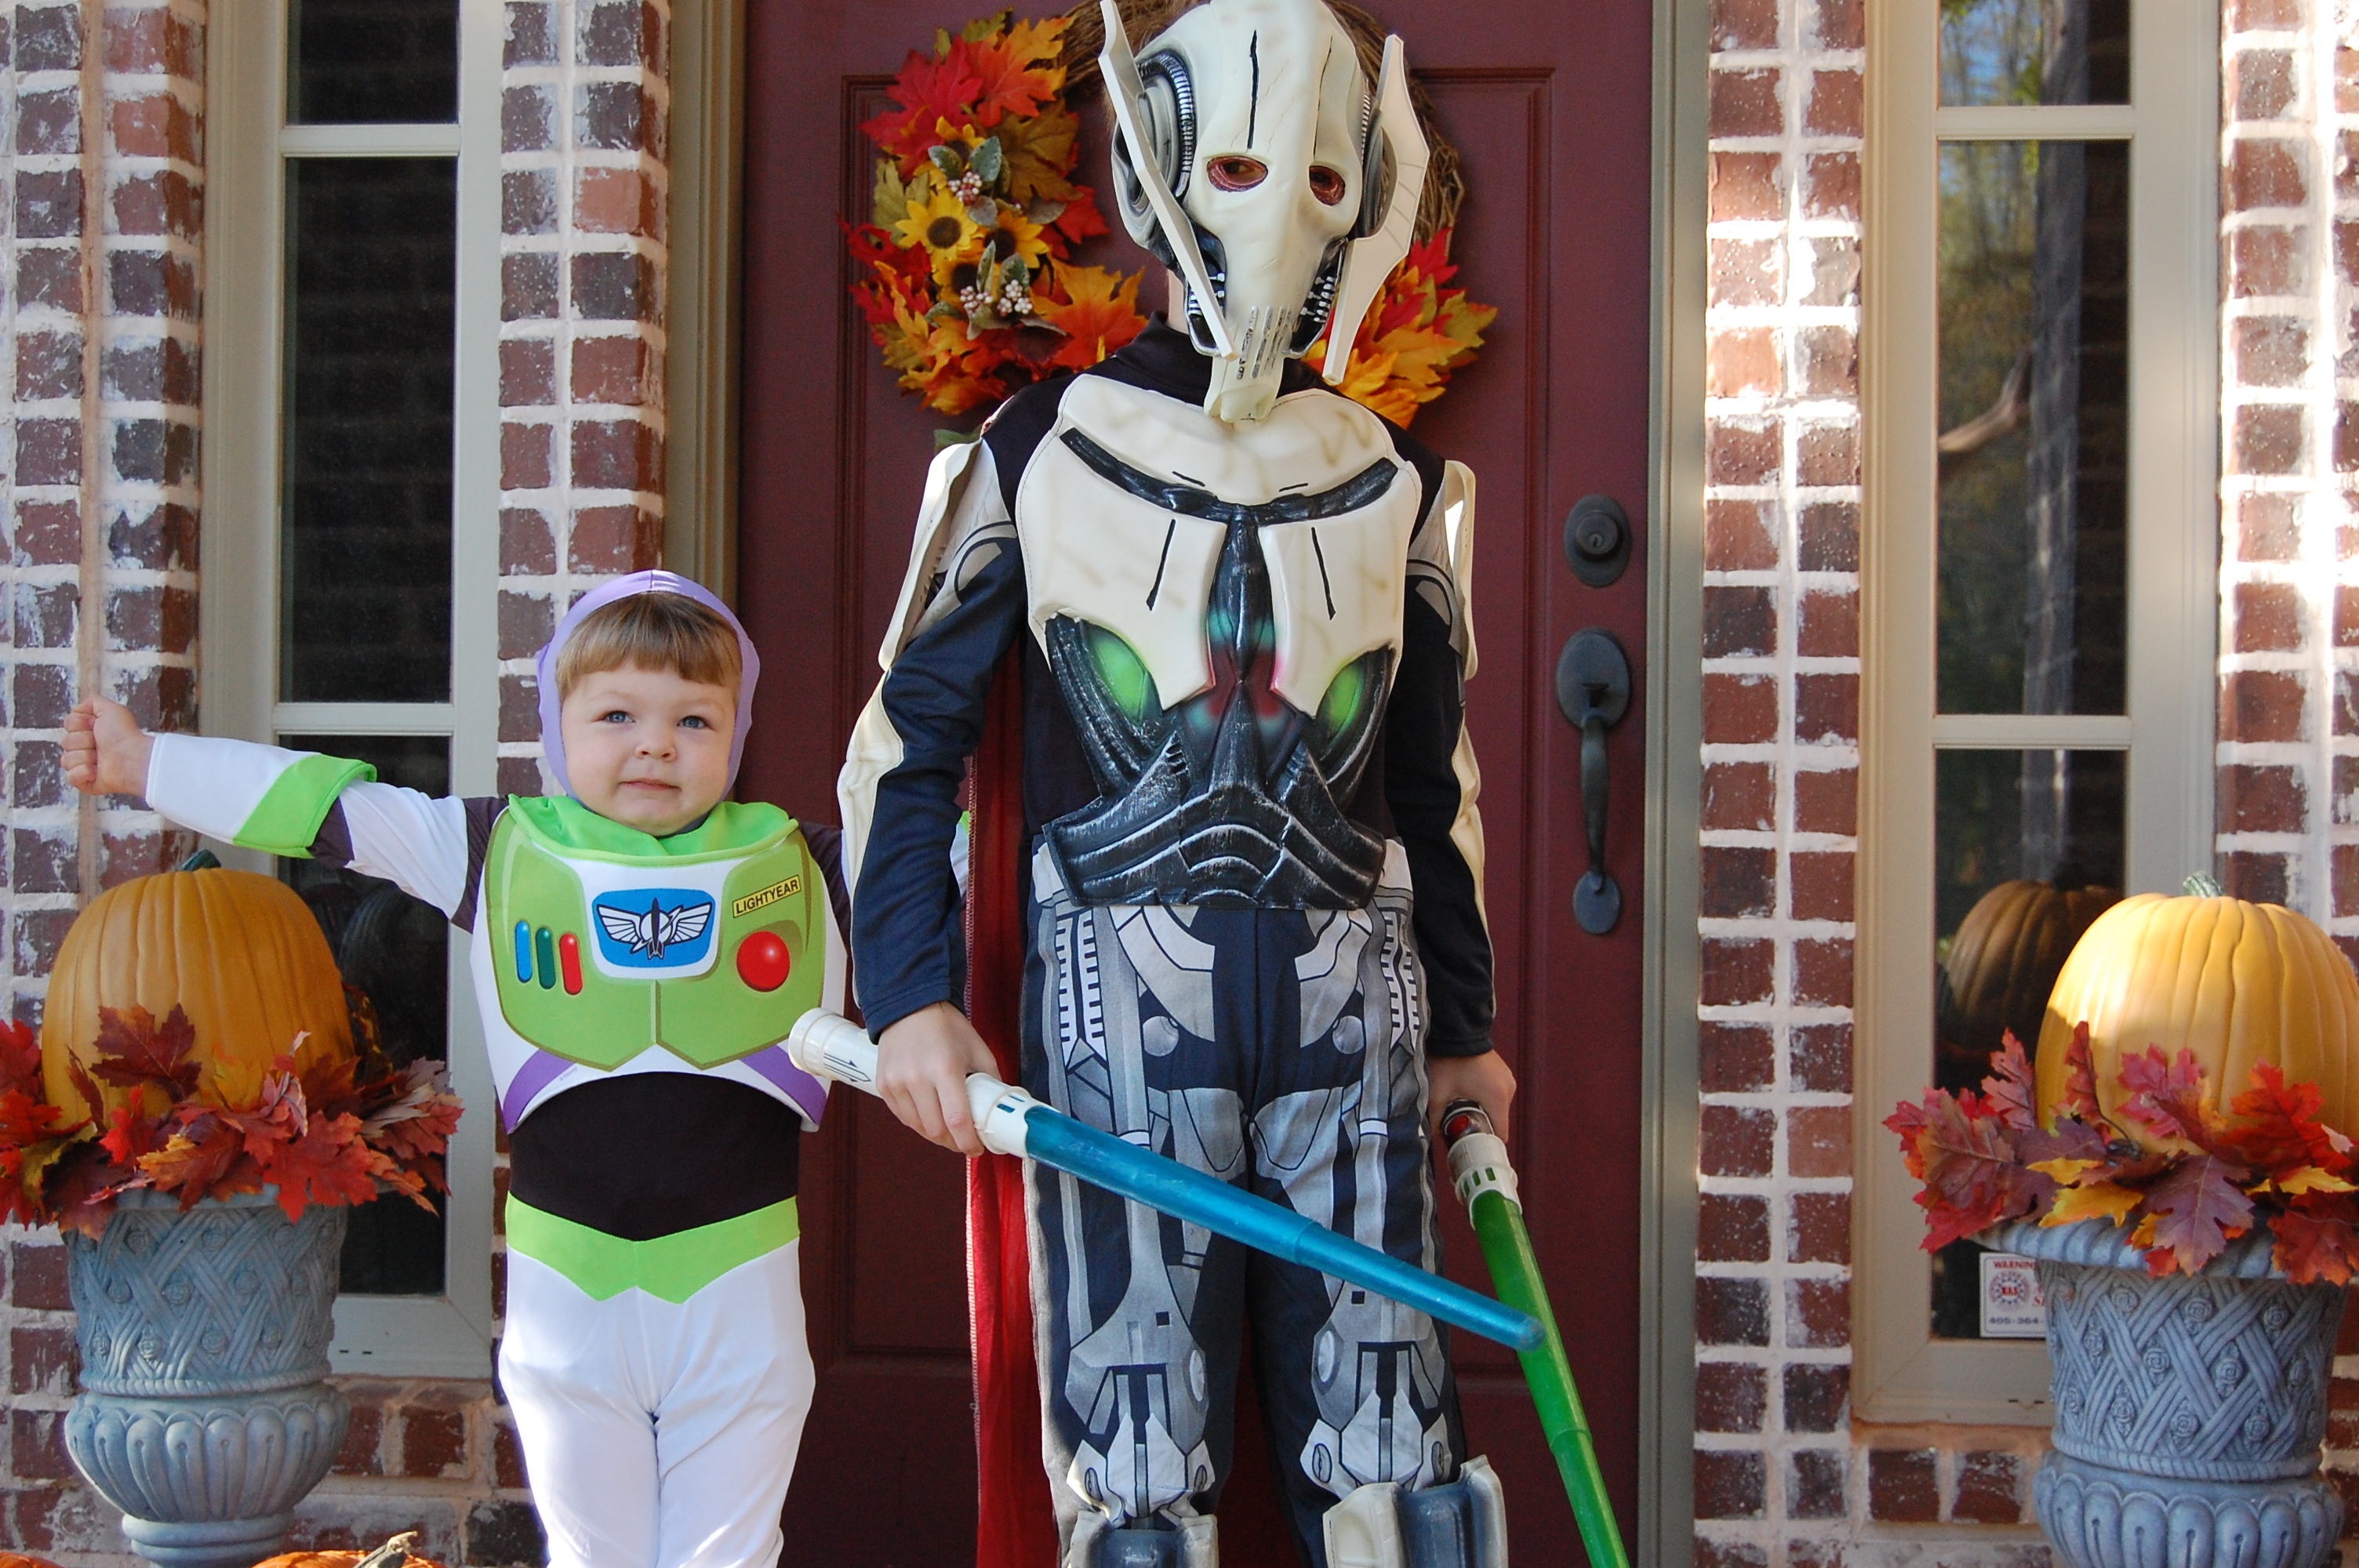 Buzz Lightyear and General Grevious